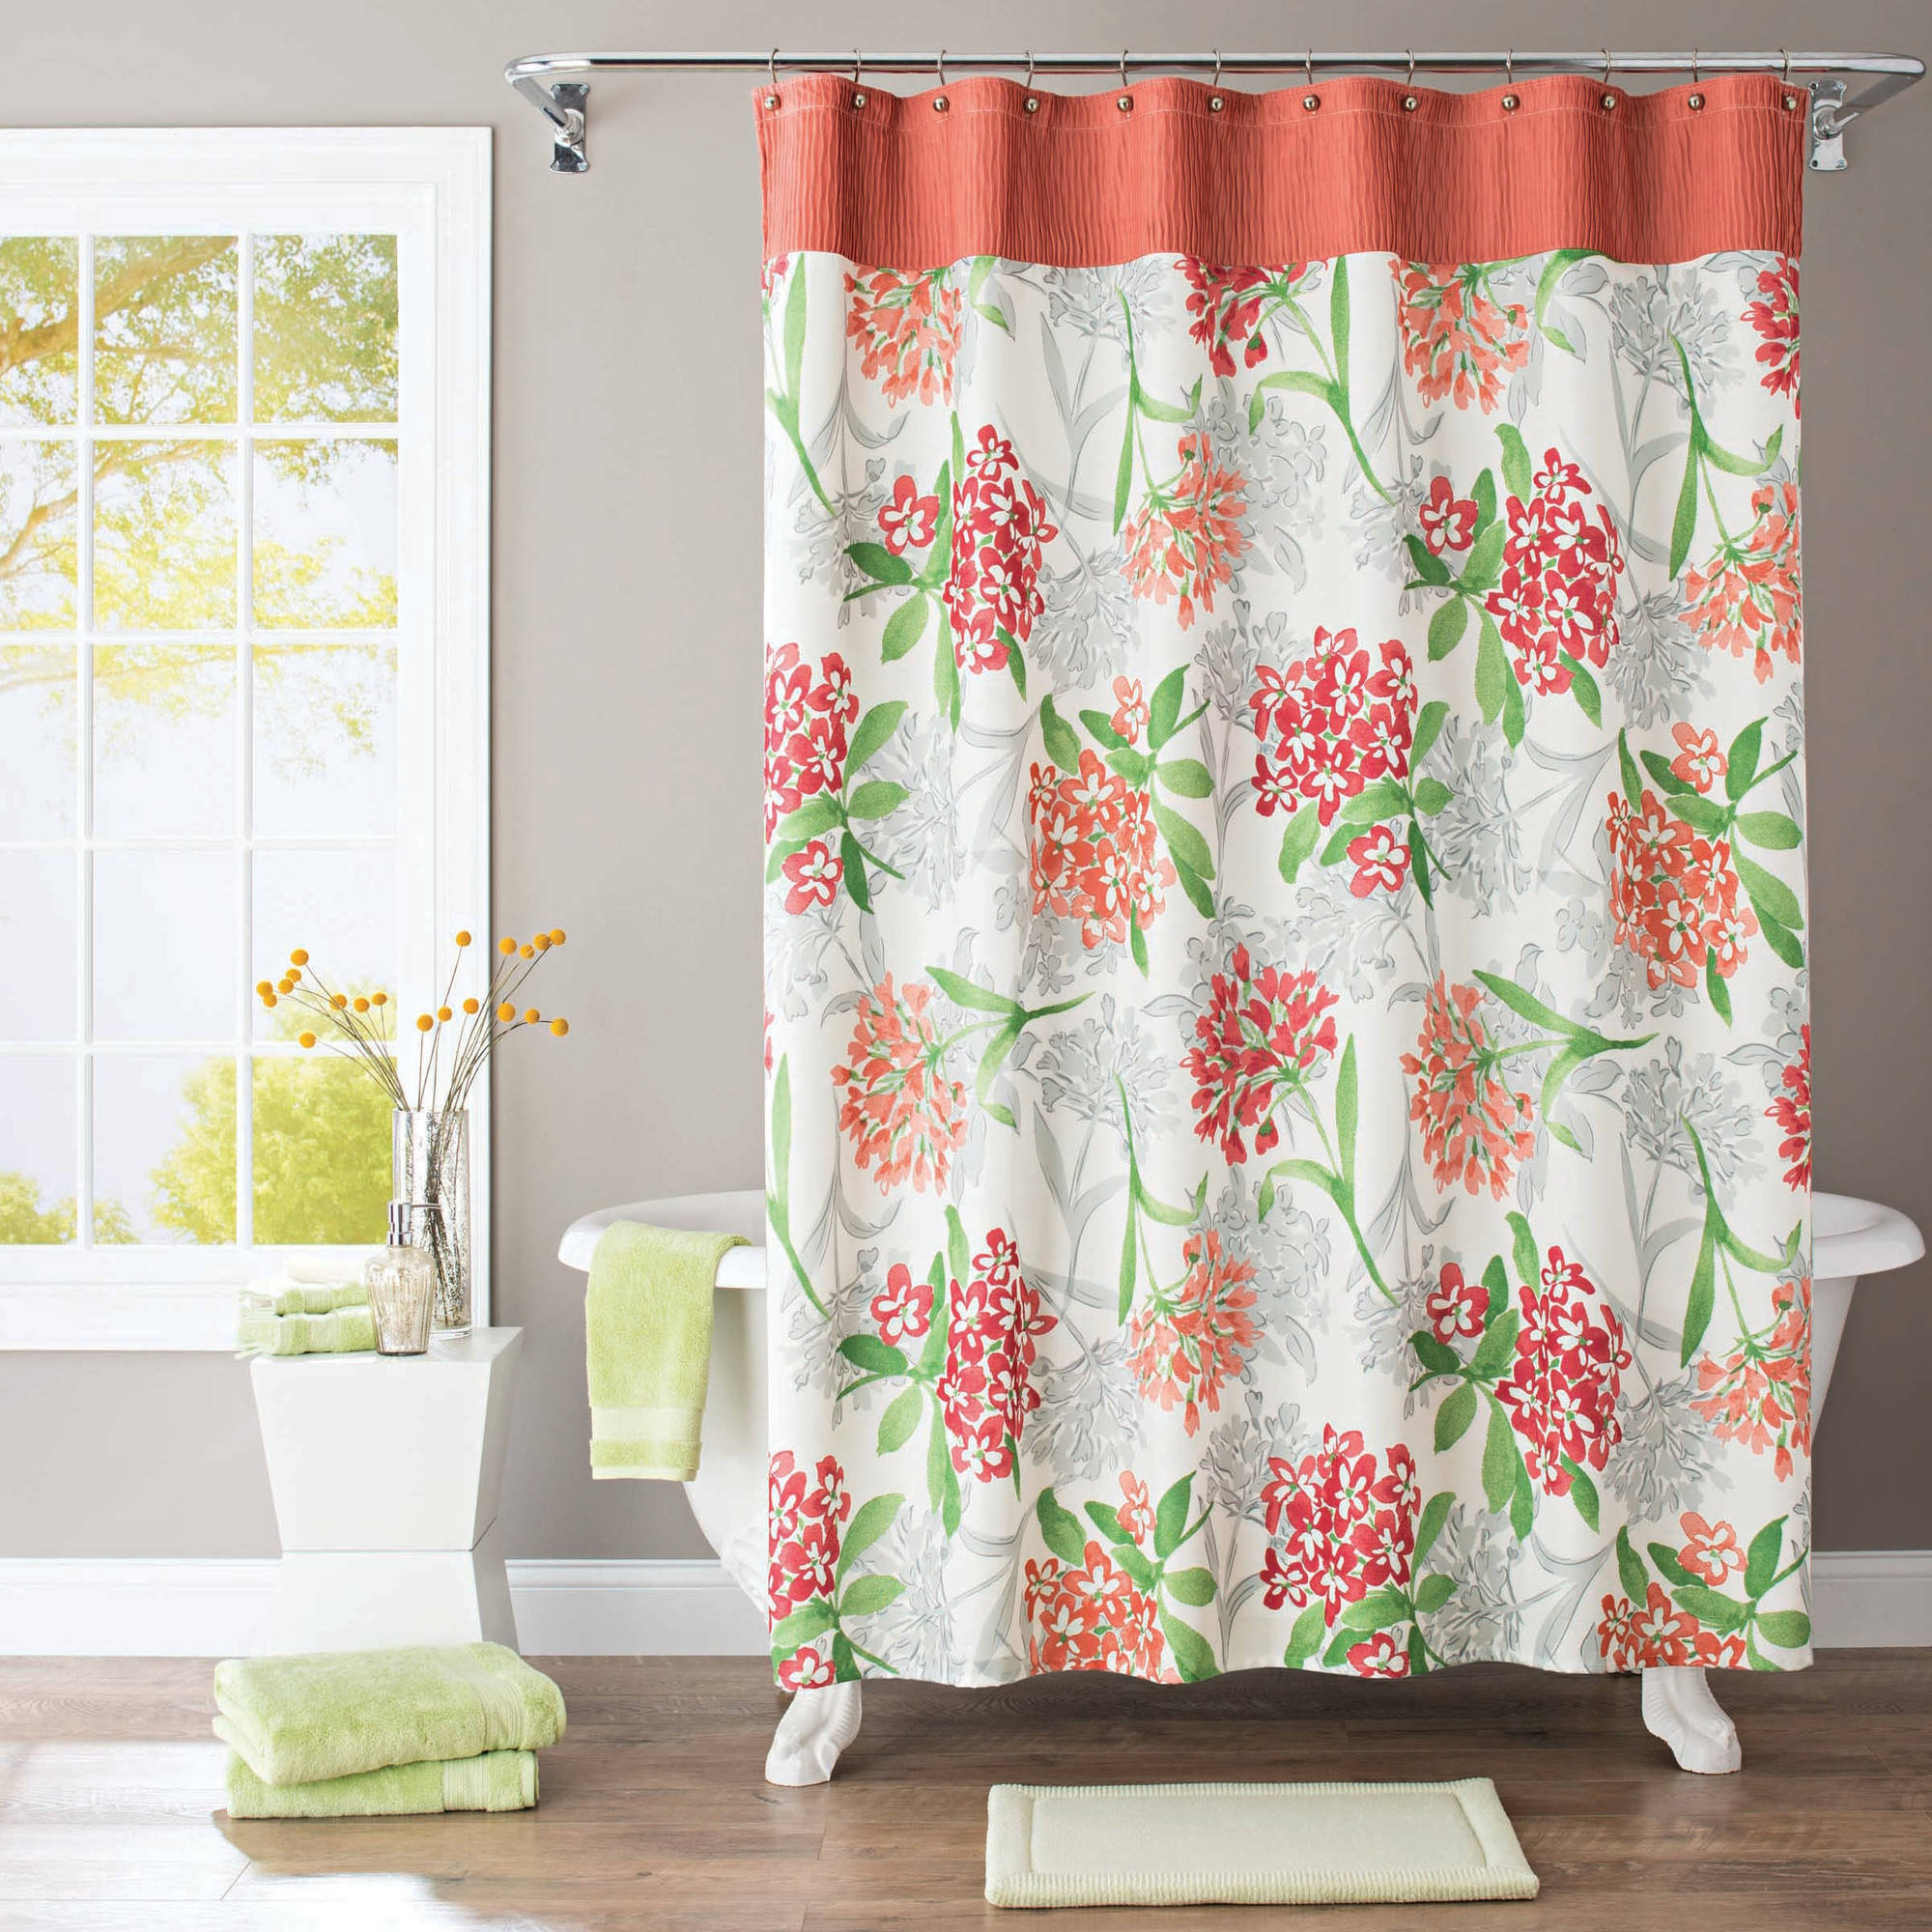 Better Homes and Gardens Watercolor Floral Fabric Shower Curtain ...